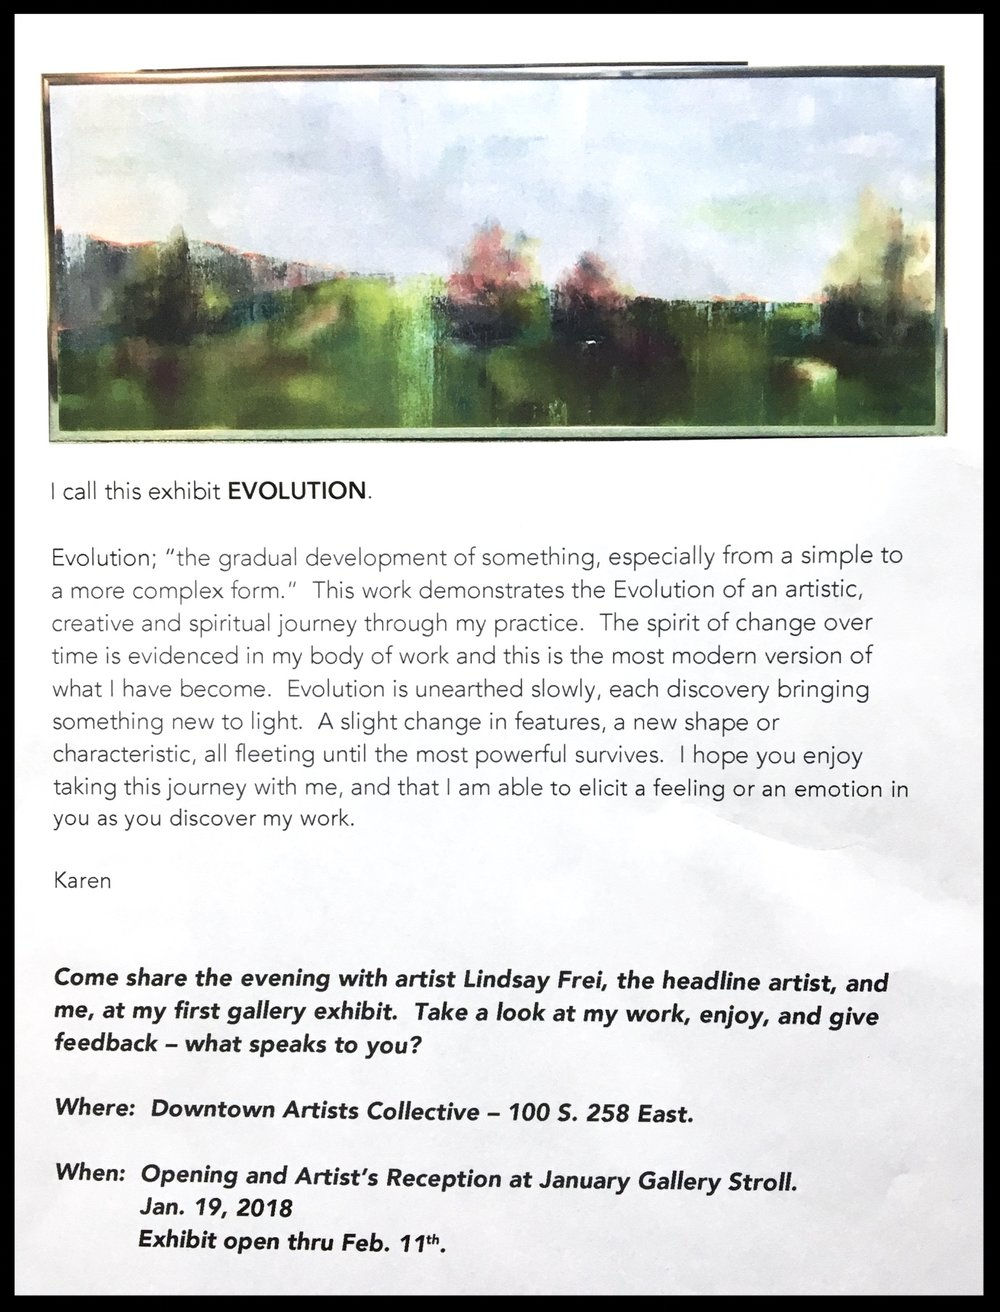 About my work in the DAC exhibit.